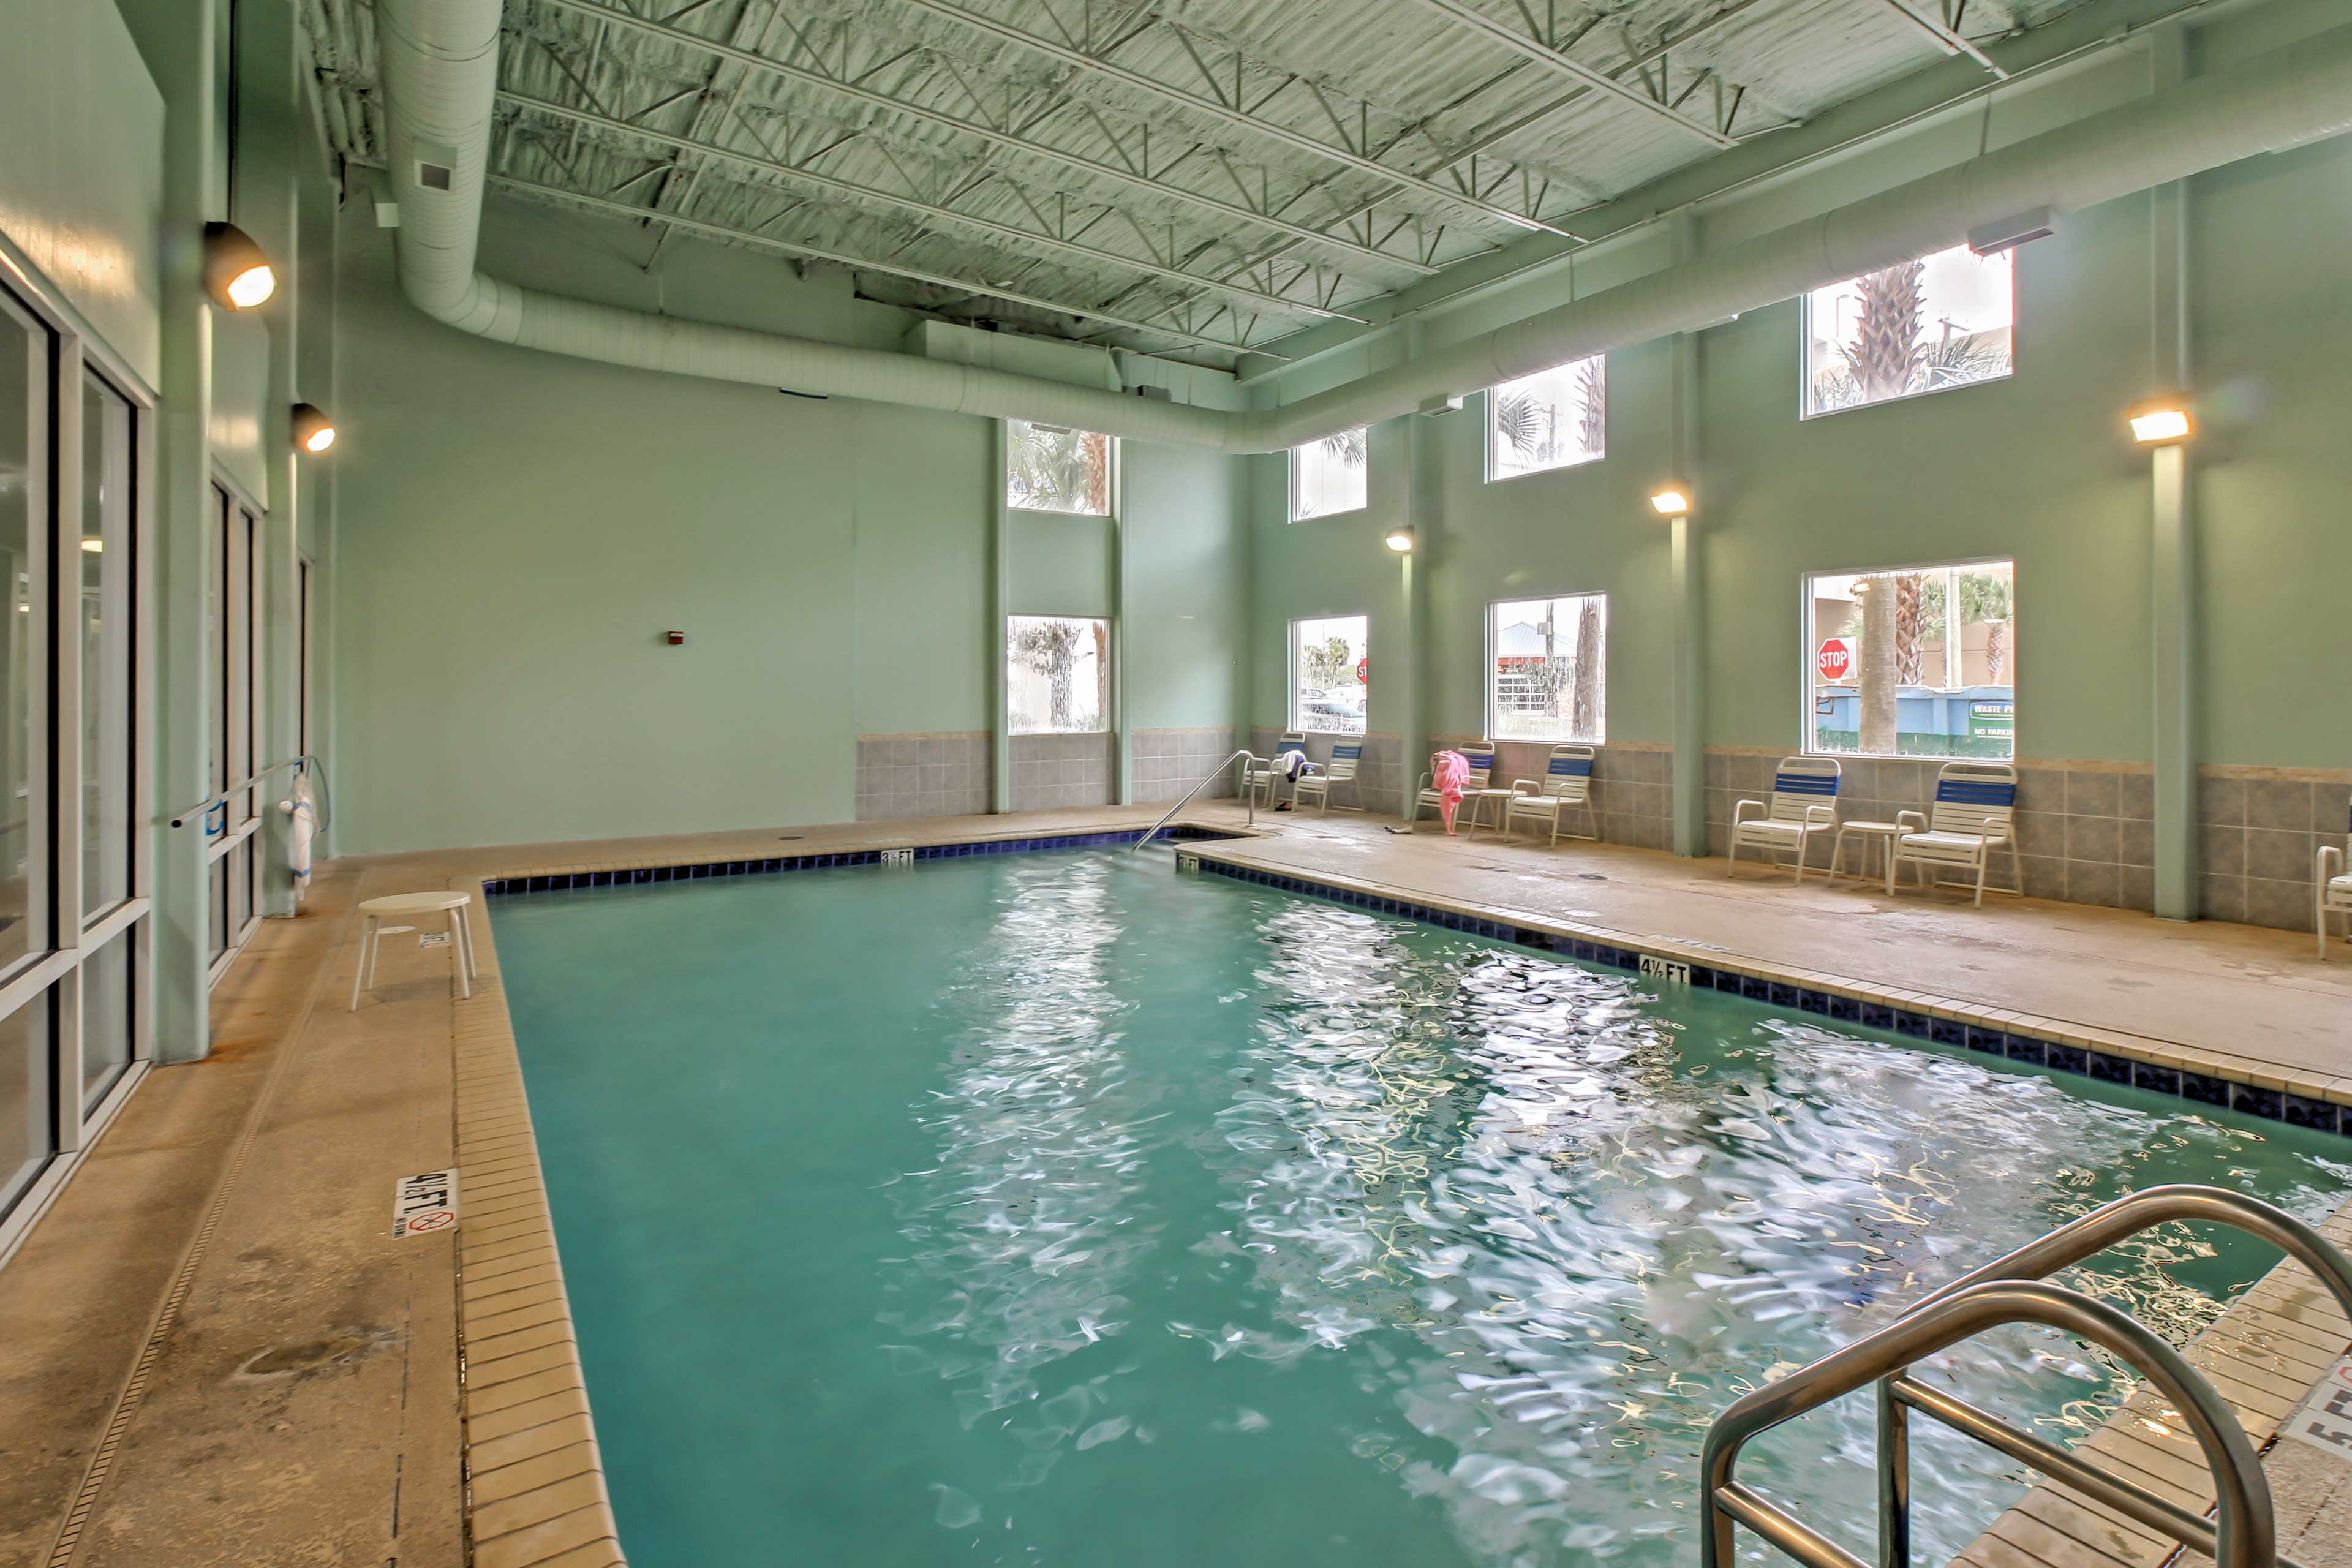 The resort has an indoor pool in addition to 2 outdoor pools.